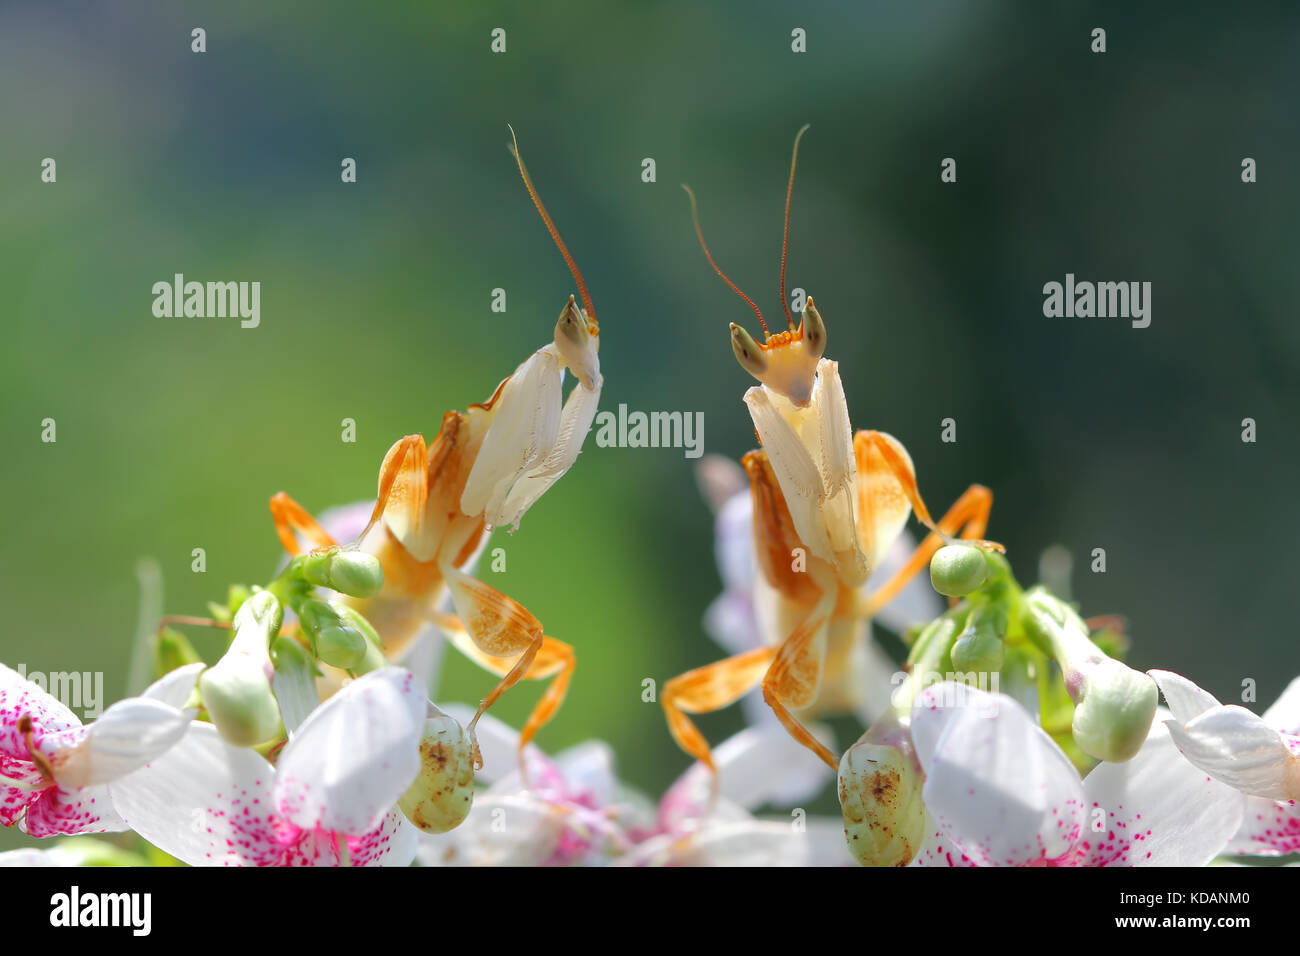 Two praying mantis on orchid flowers - Stock Image